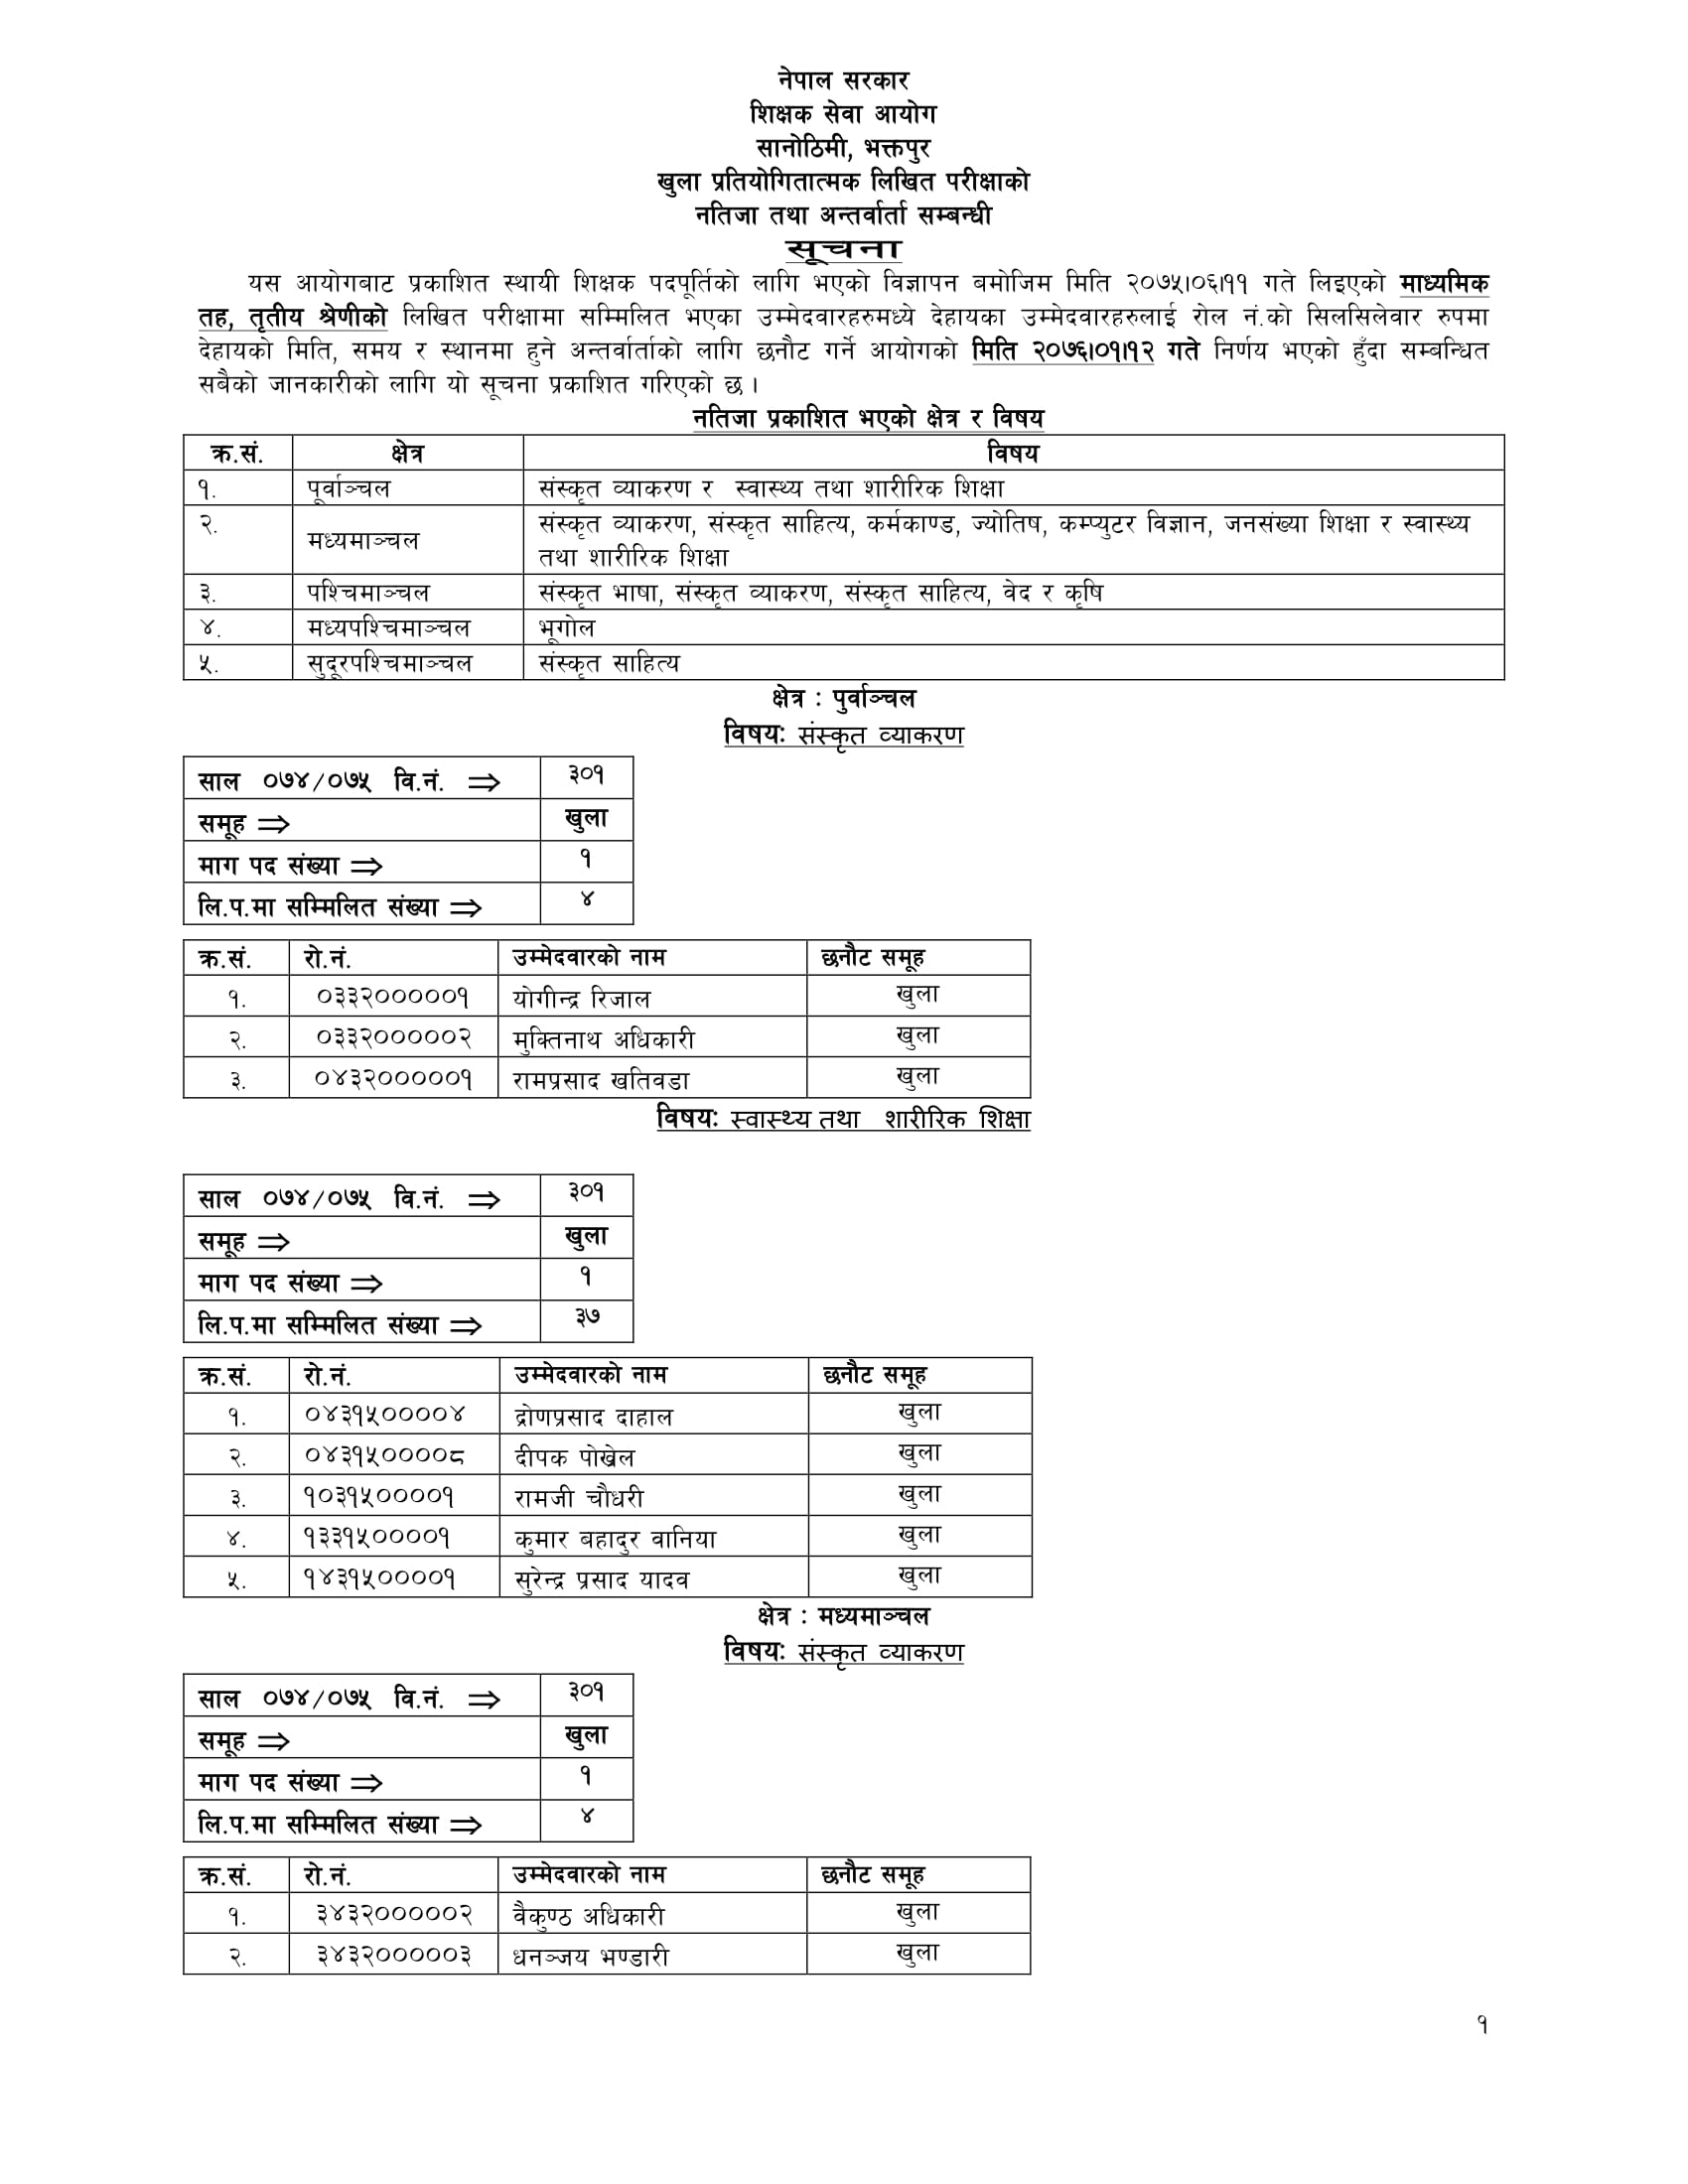 TSC exam result, shikshak sewa aayog natija, temporary teachers result, TSC exam result, TSC internal exam result, TSC Nepal 2075 Internal Exam Result, tsc result, tsc result 2075, tsc result 2076, tsc secondary result,  tsc lower secondary result,  tsc primary level result,  tsc Nepal exam result, शिक्षक नतिजा,  नतिजा, शिक्षक नतिजा २०७५